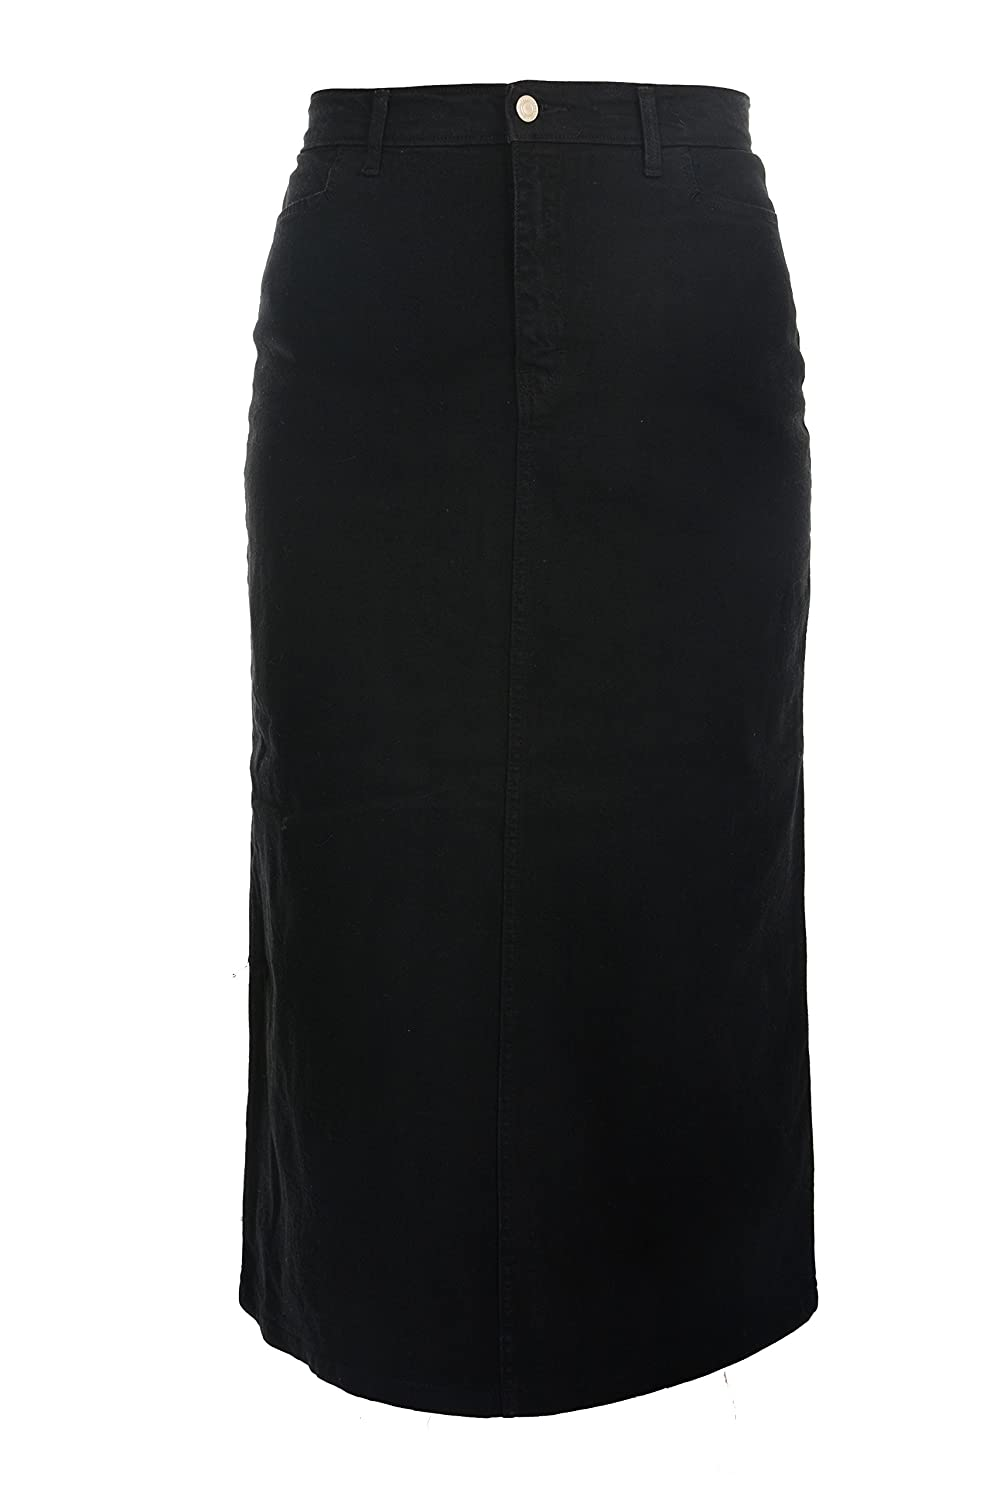 Ice Cool Ladies Women's Black Stretch Denim Maxi Skirt US Sizes 10 to 28. Length 35 Plus Fit Clothing